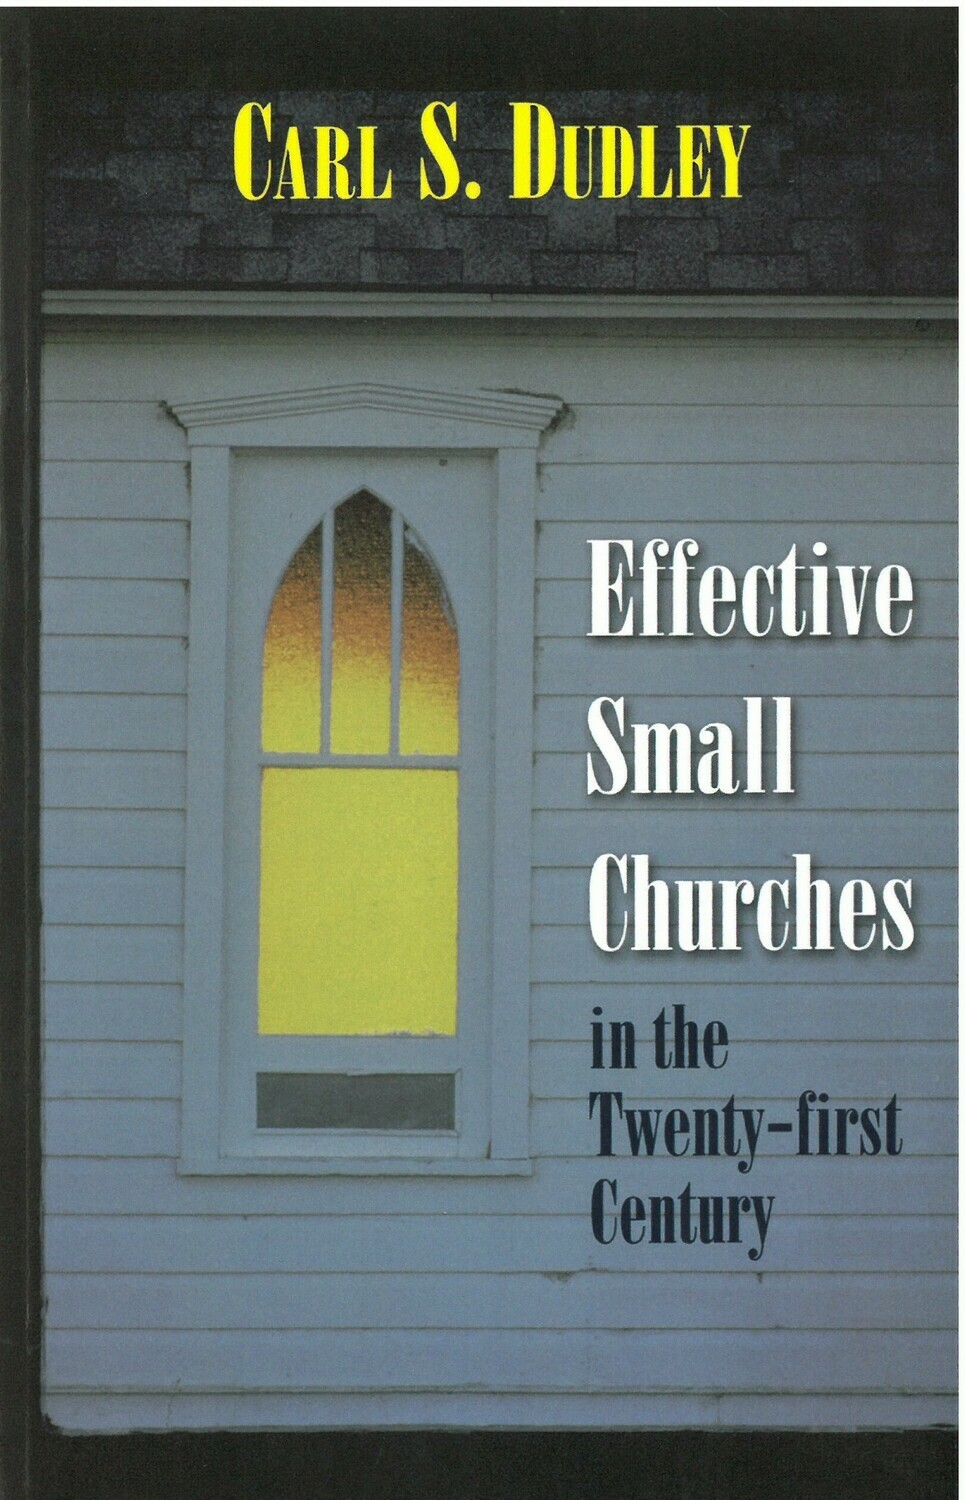 Effective Small Churches in the Twenty-first Century